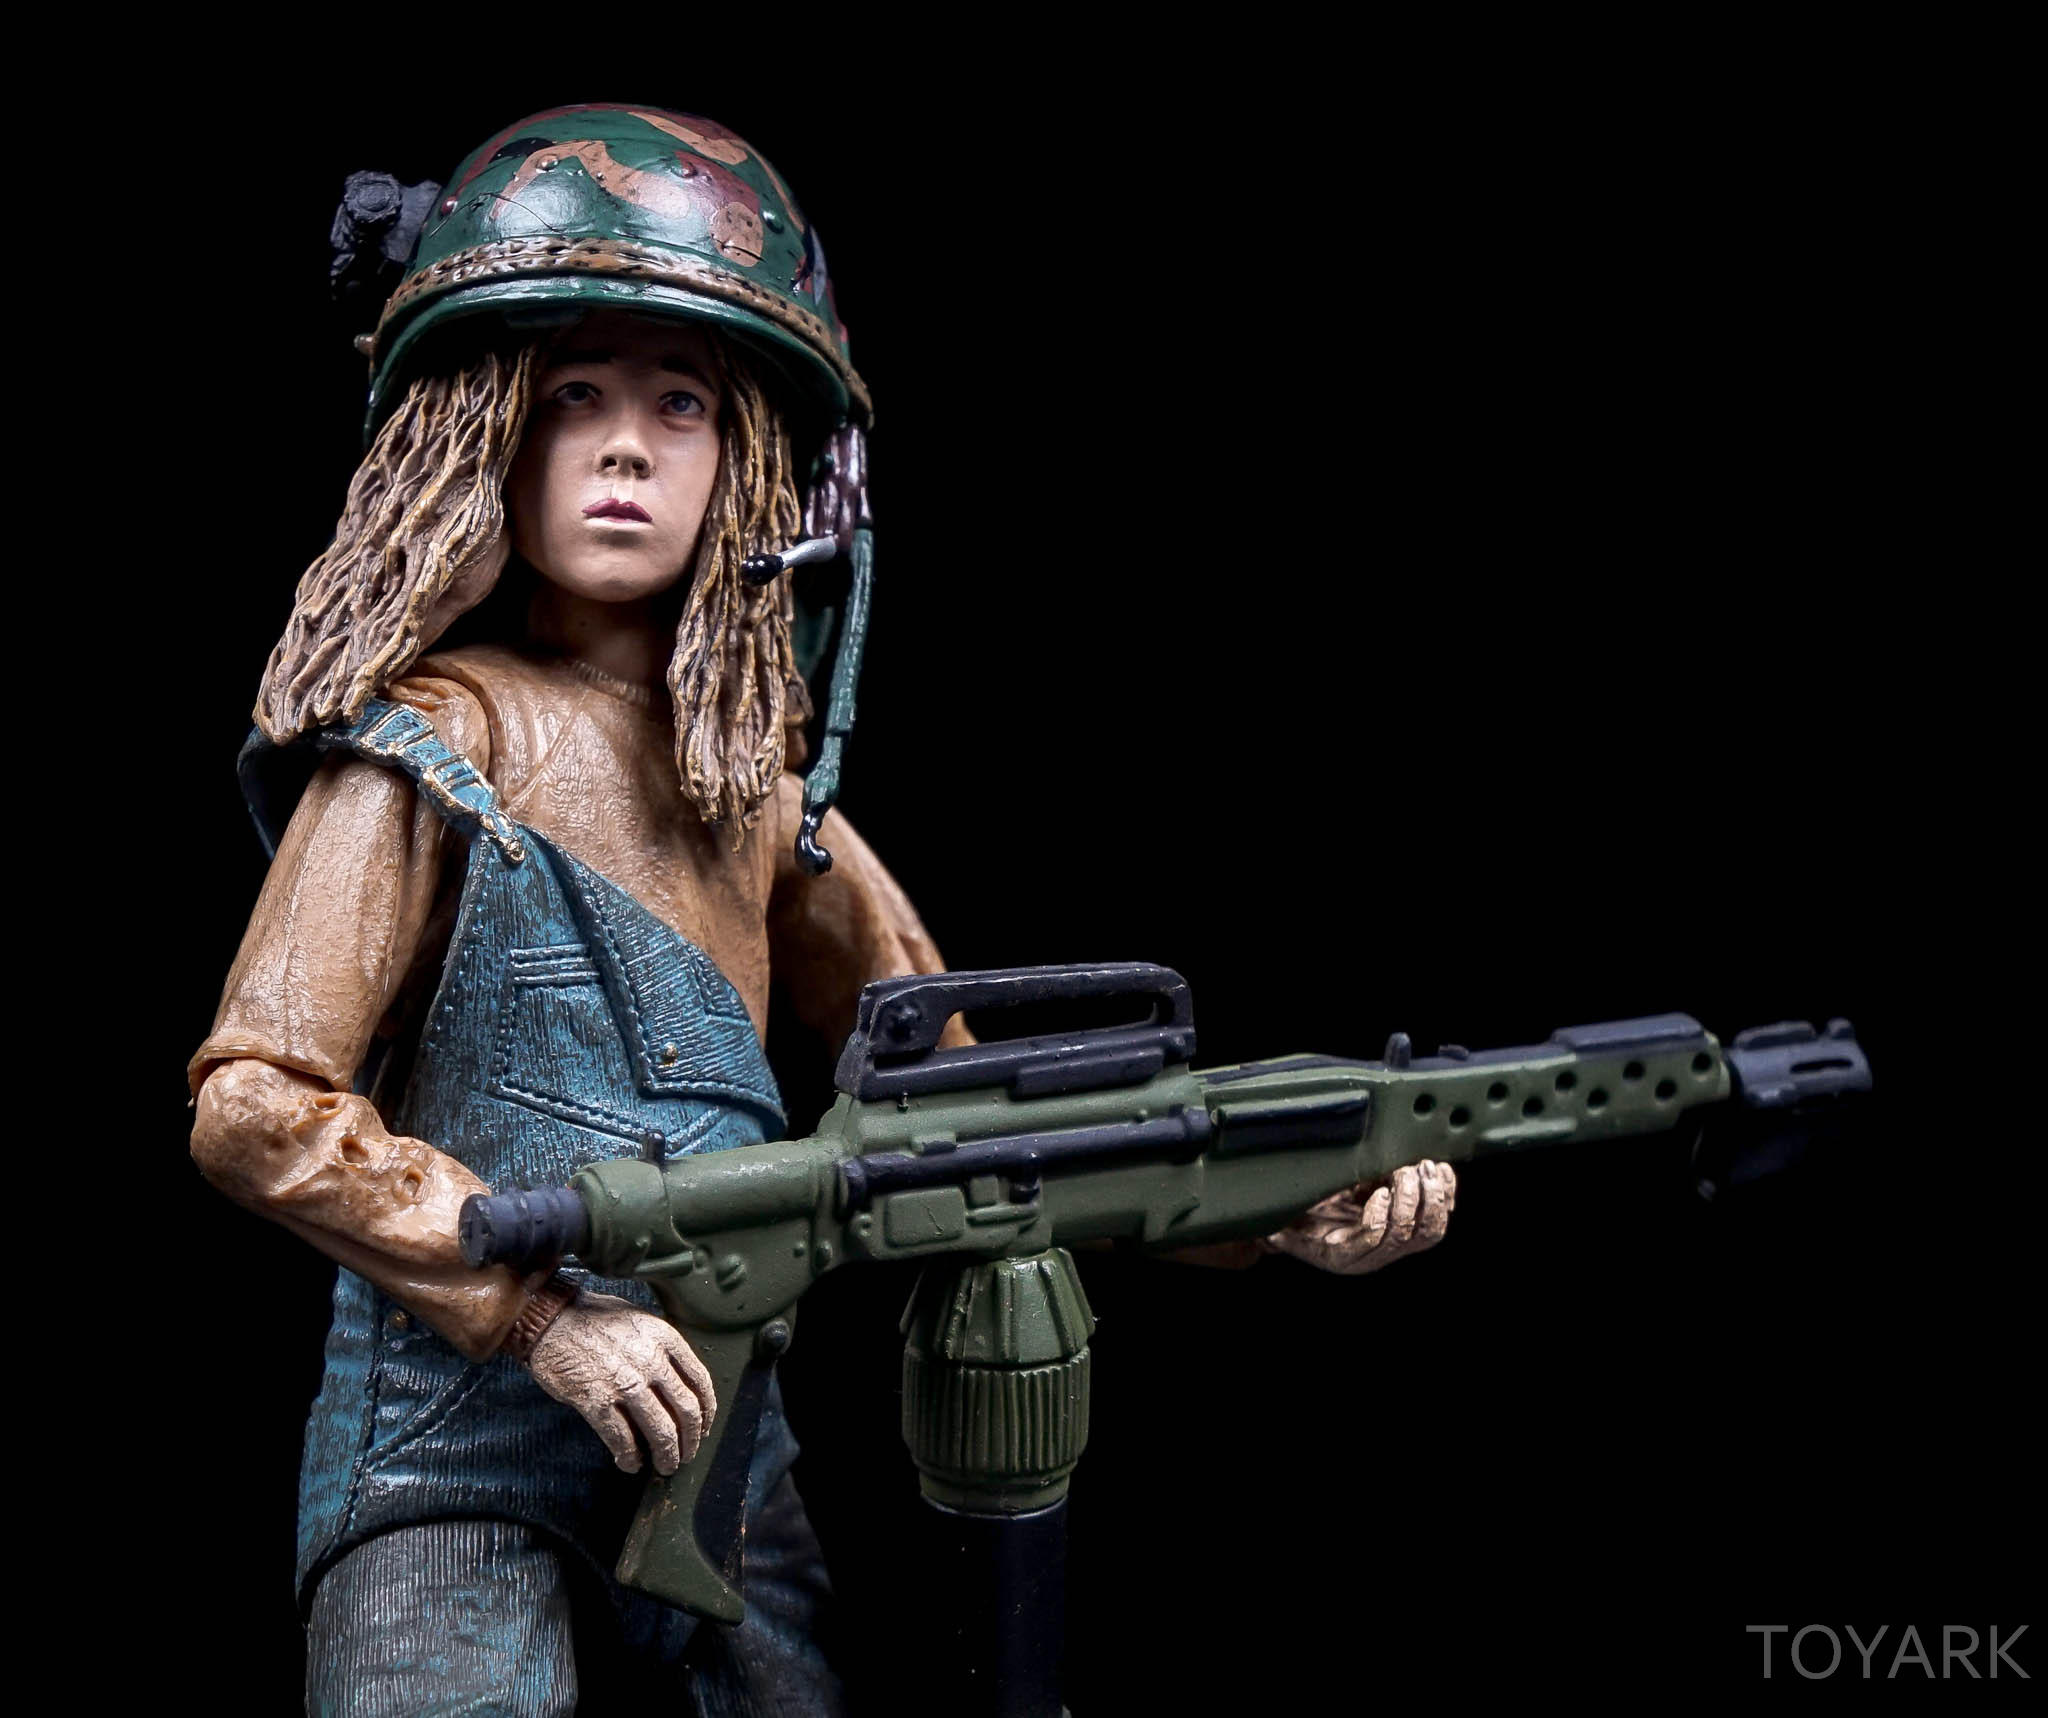 http://news.toyark.com/wp-content/uploads/sites/4/2016/08/NECA-SDCC2016-Aliens-Newt-030.jpg